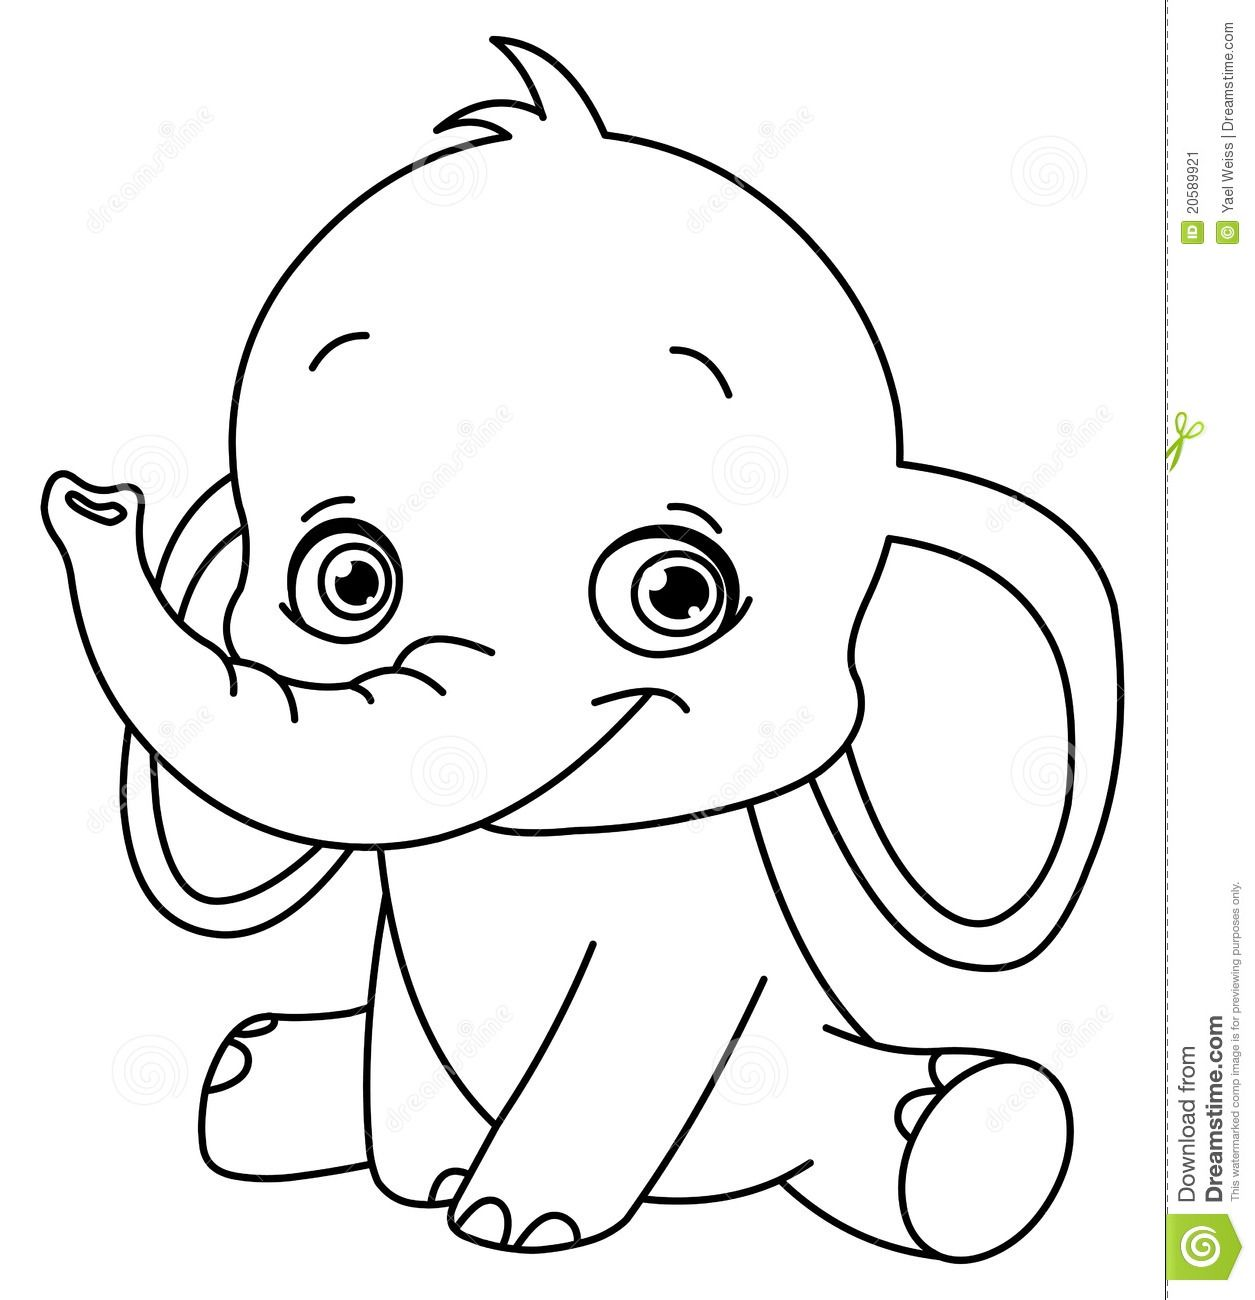 baby elephant coloring pages Baby elephant coloring pages to download and print for free  baby elephant coloring pages